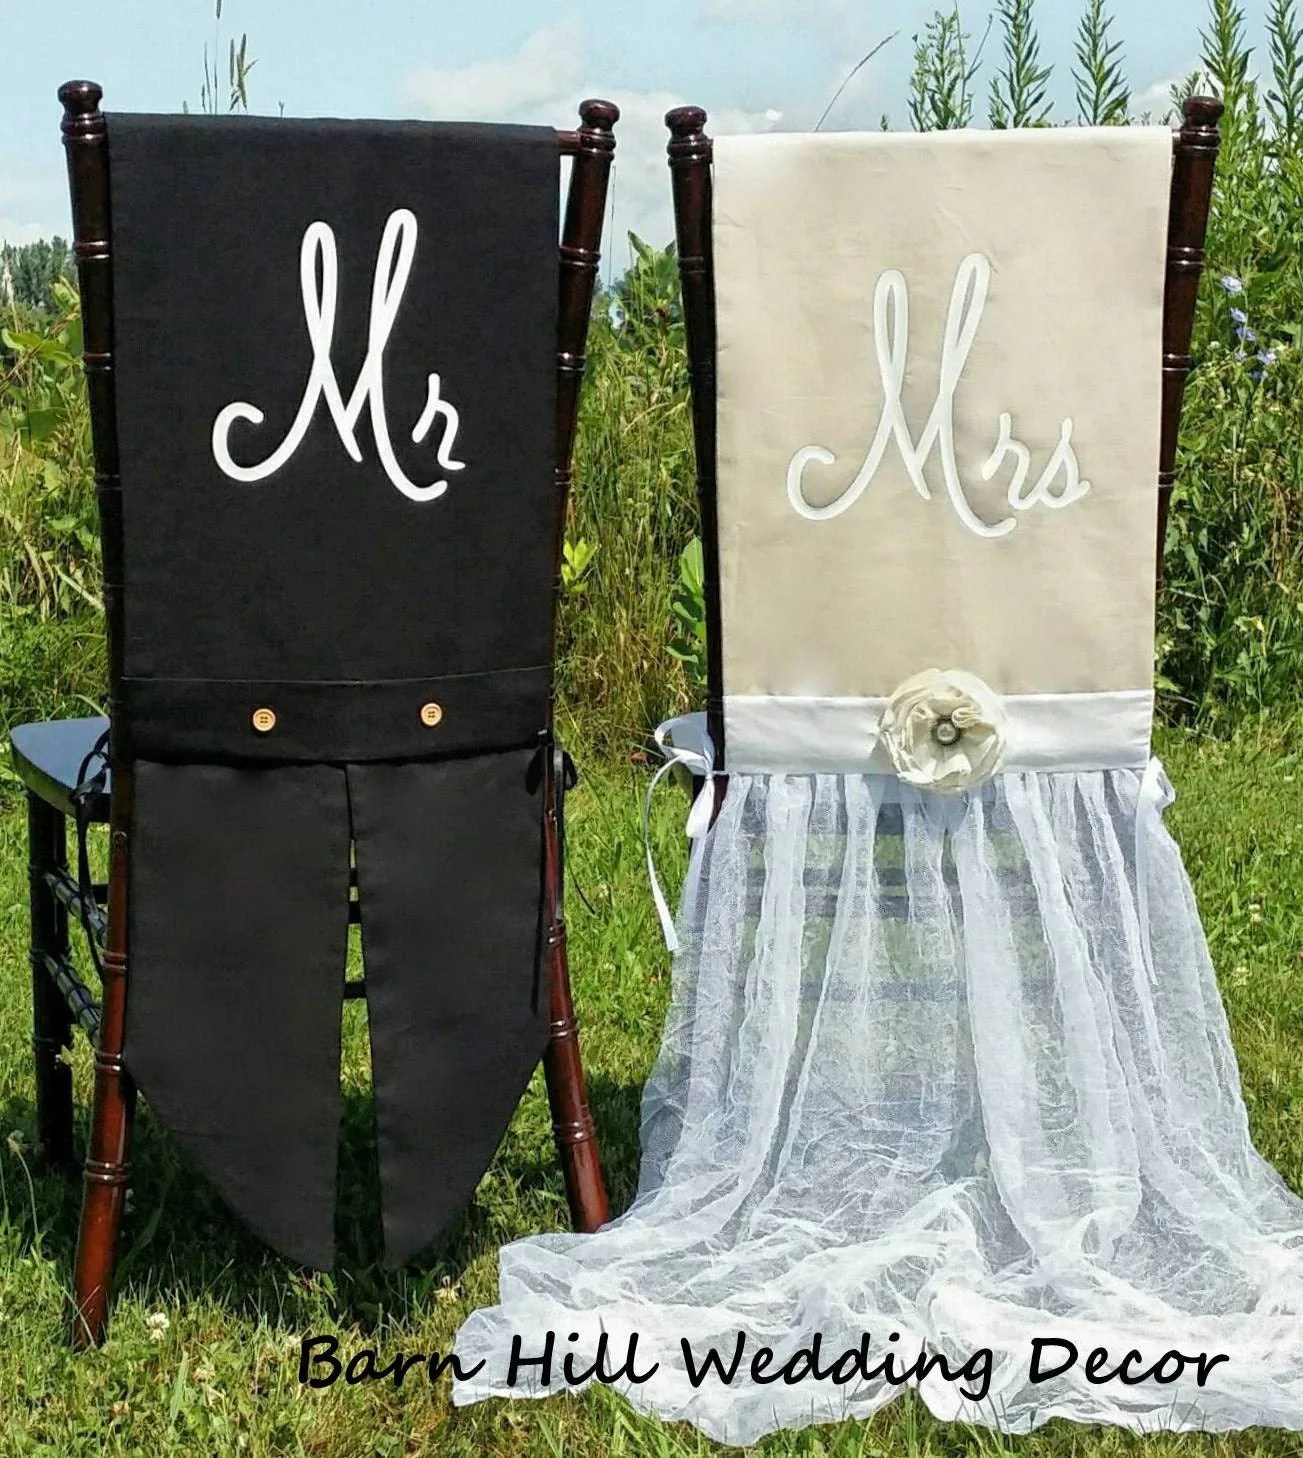 champagne banquet chair covers p pod usa wedding mr and mrs black